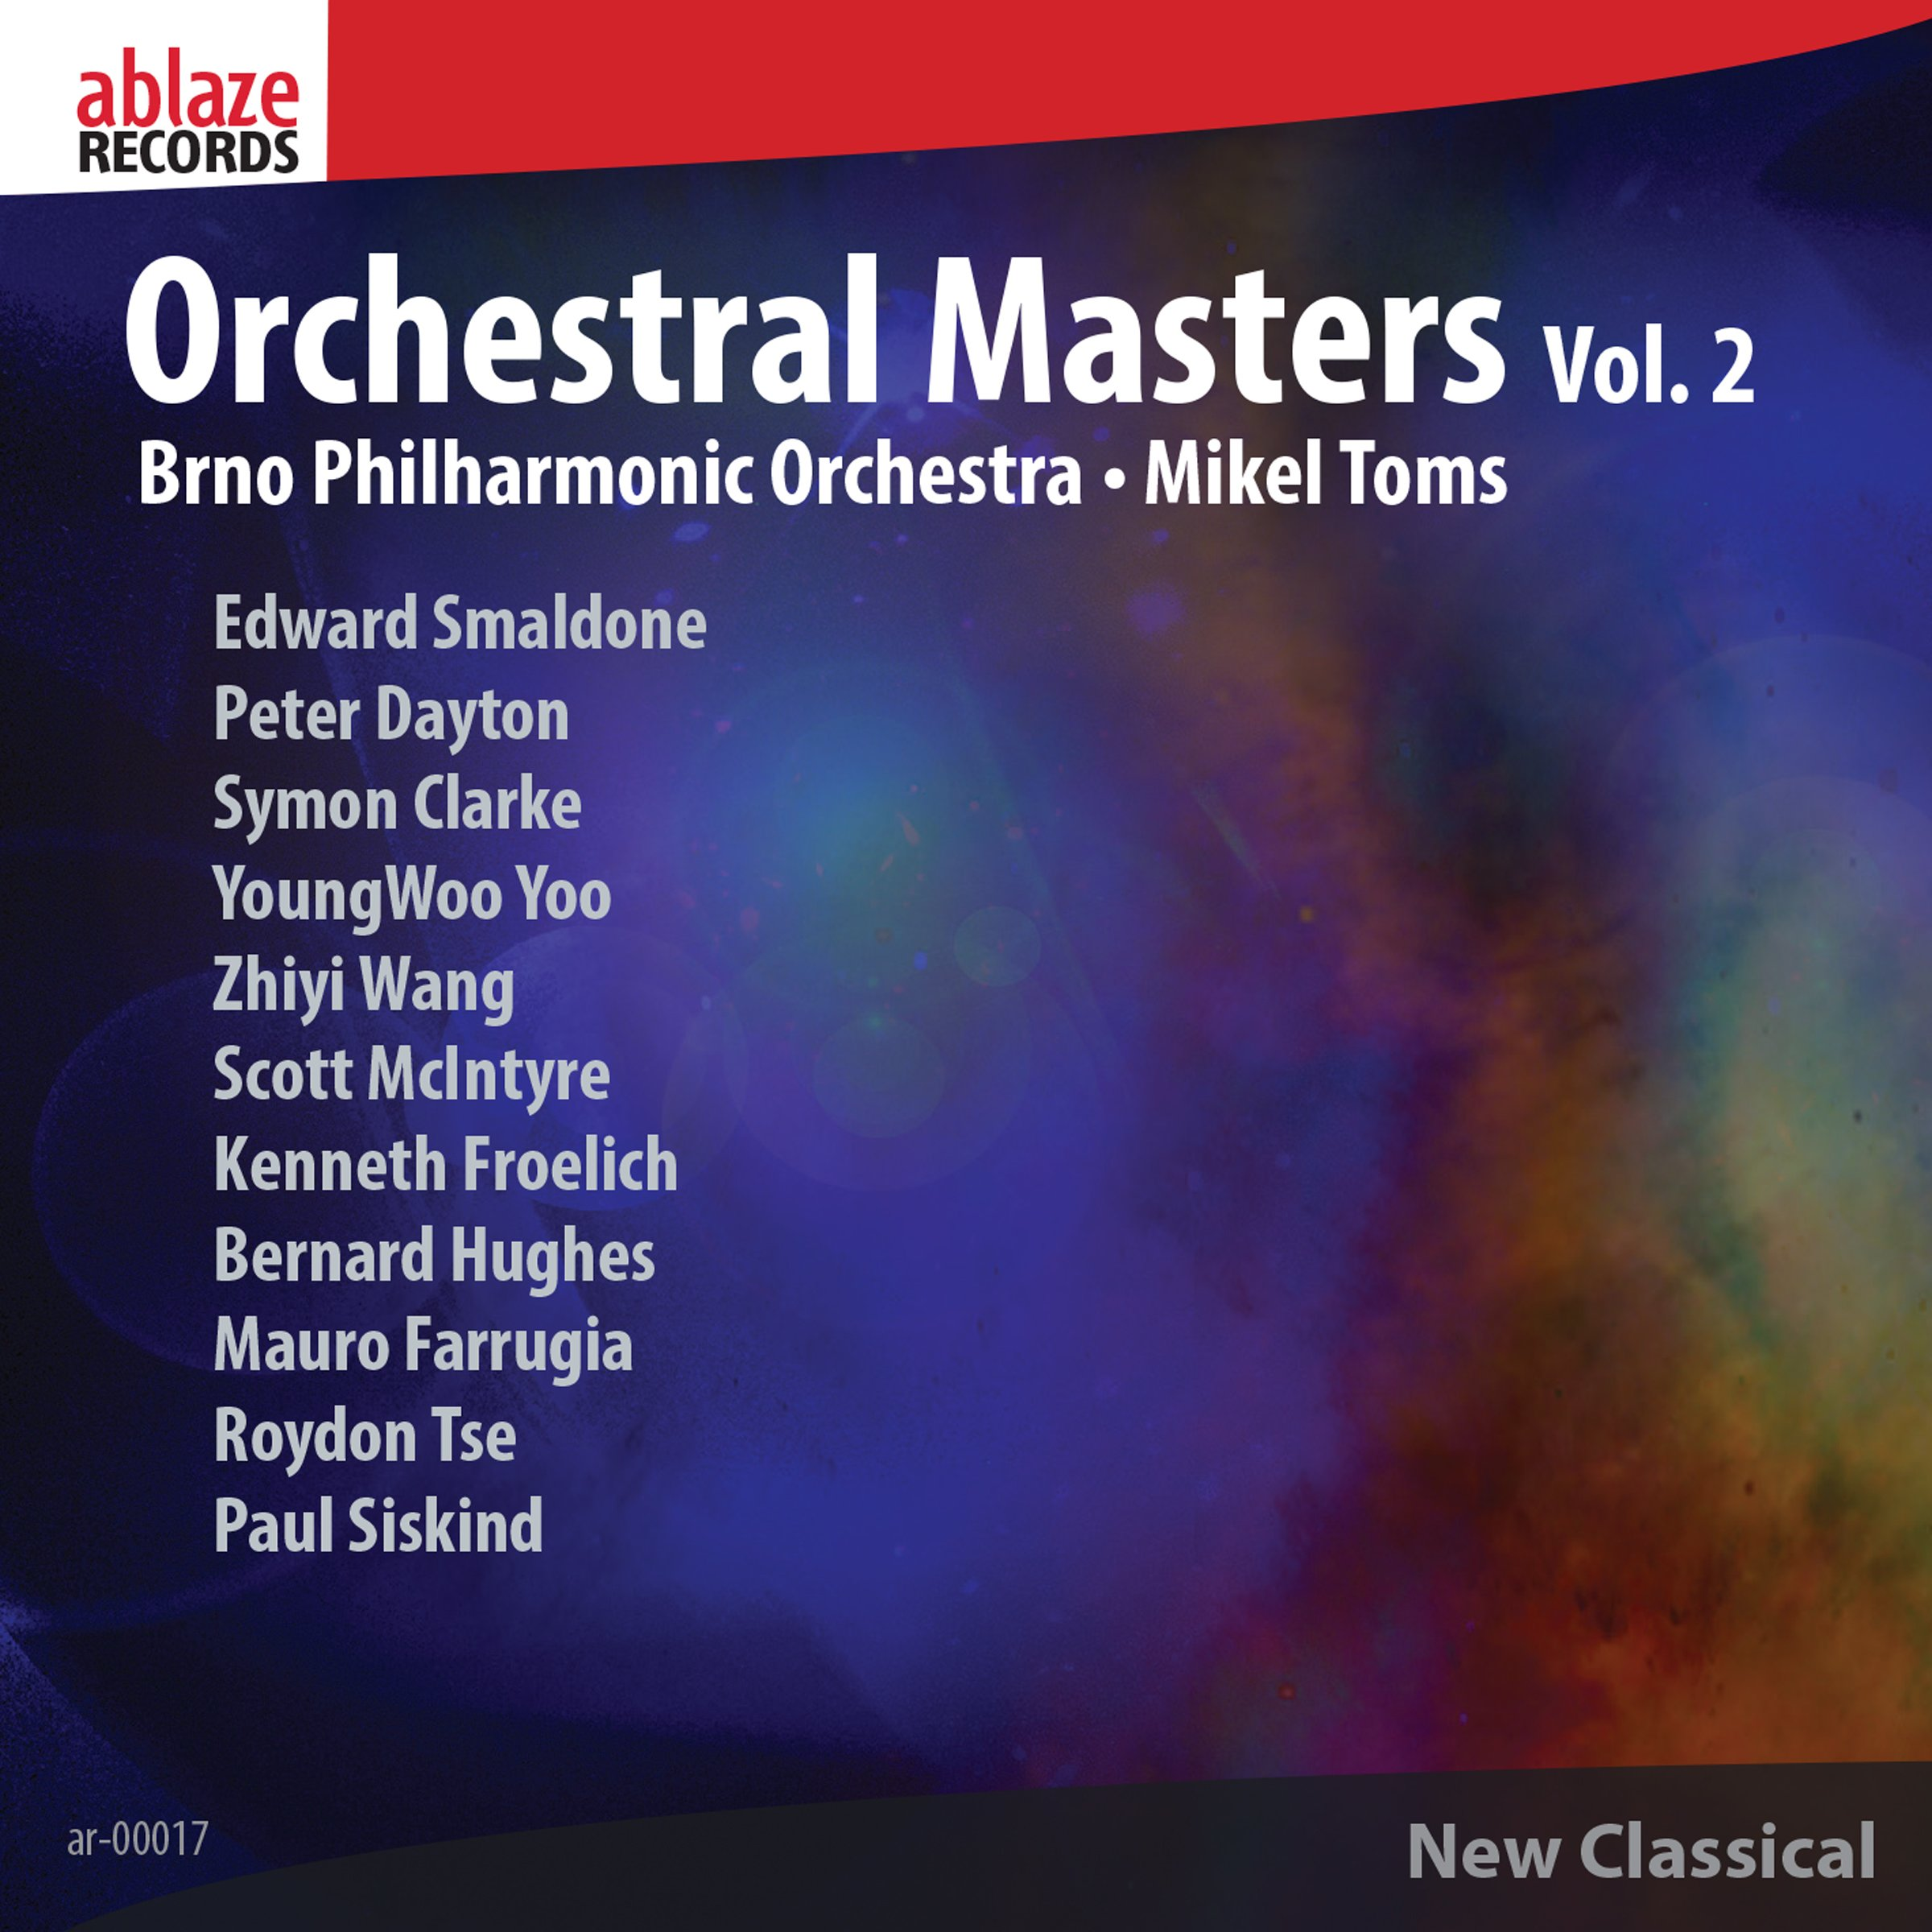 Orchestral Masters Vol. 2 by Ablaze Records